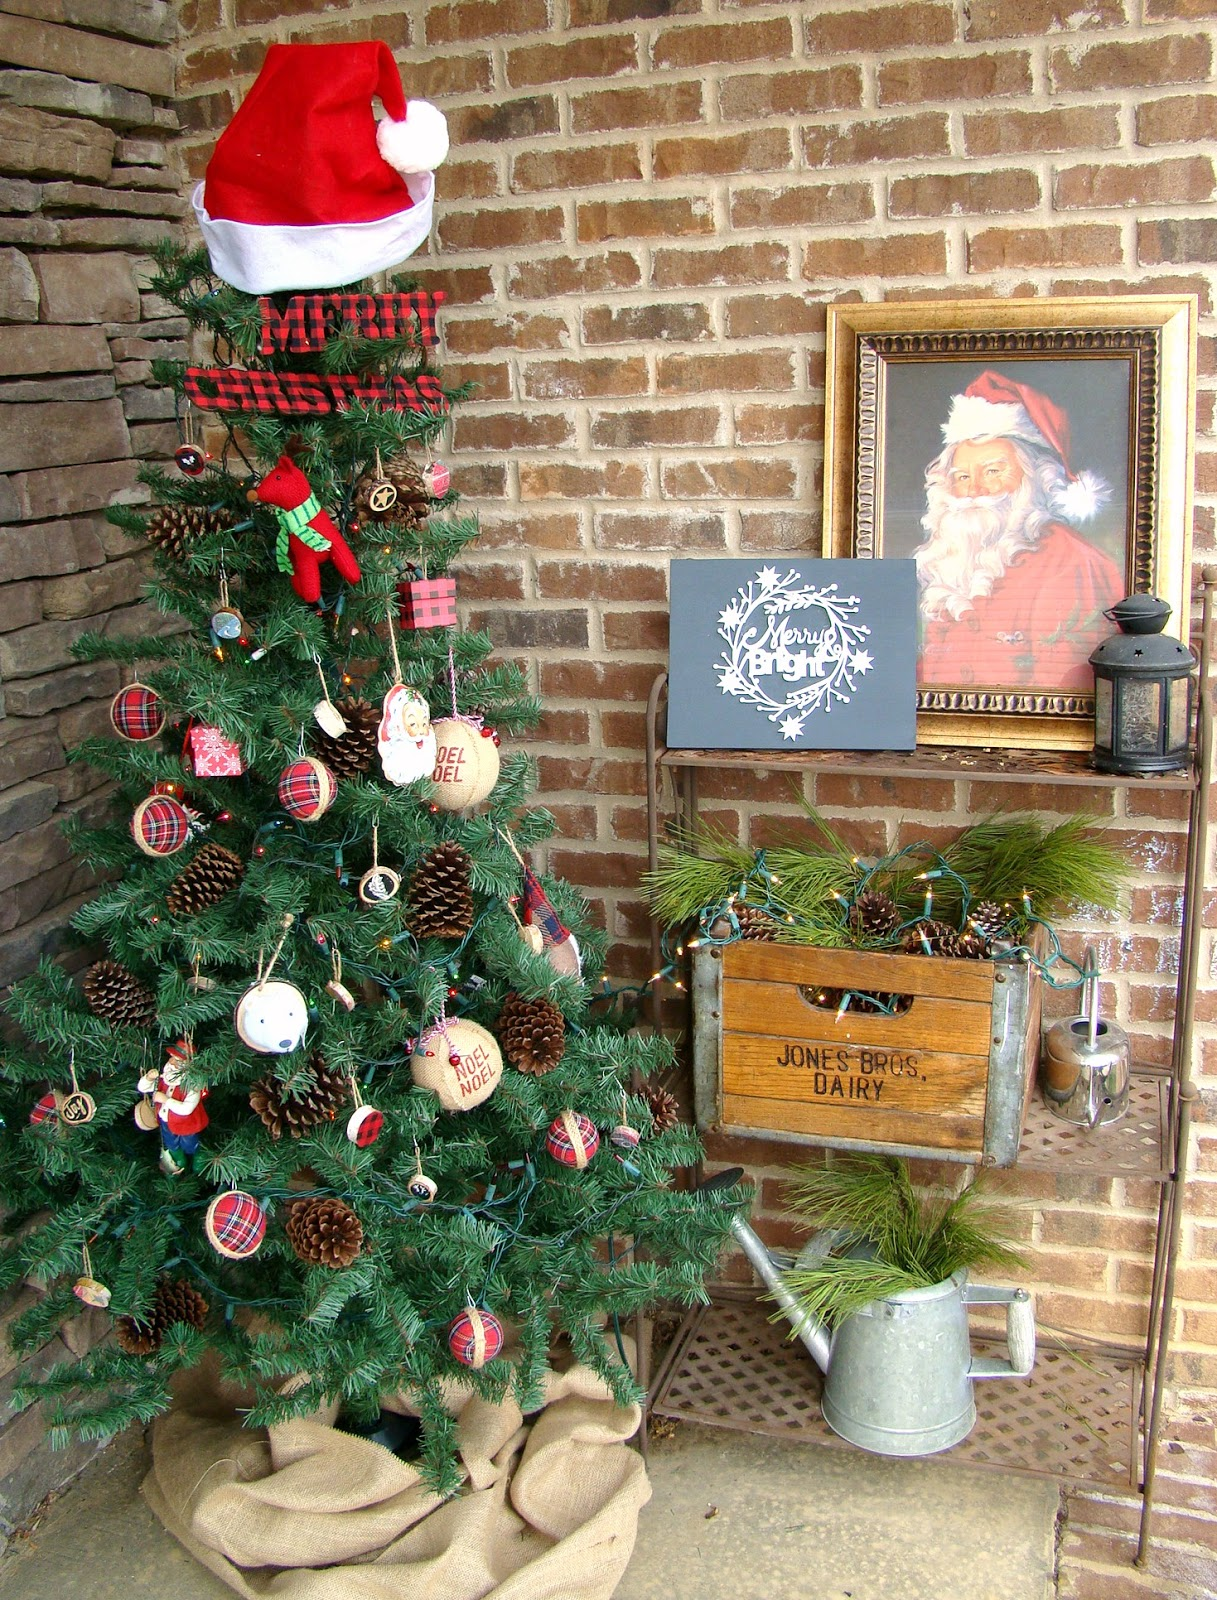 This Is The First Year Ive Done Much Decorating For Christmas On Porch As Well Lights In Bushes Out Front